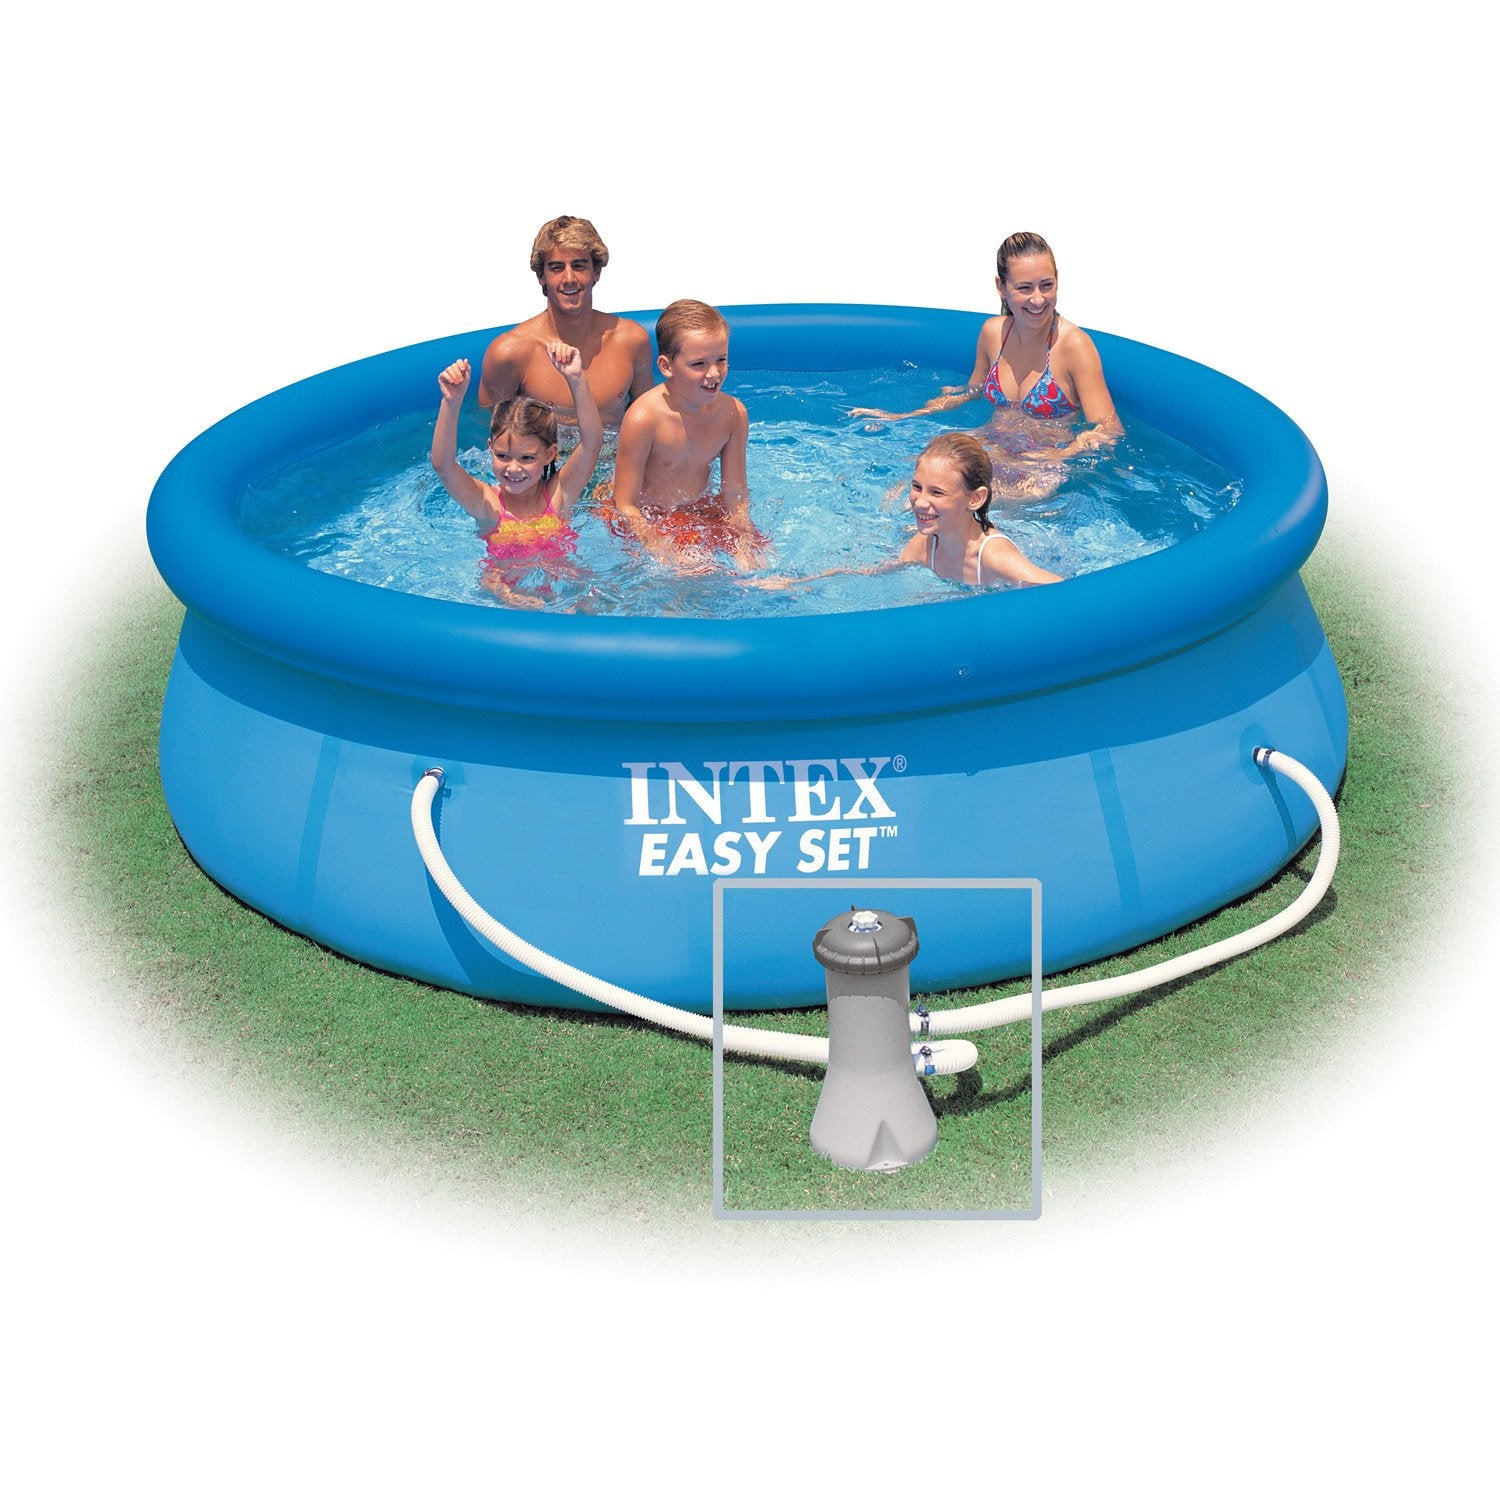 Piscine hors sol autoportante gonflable easy set intex for Piscine gonflable intex ronde